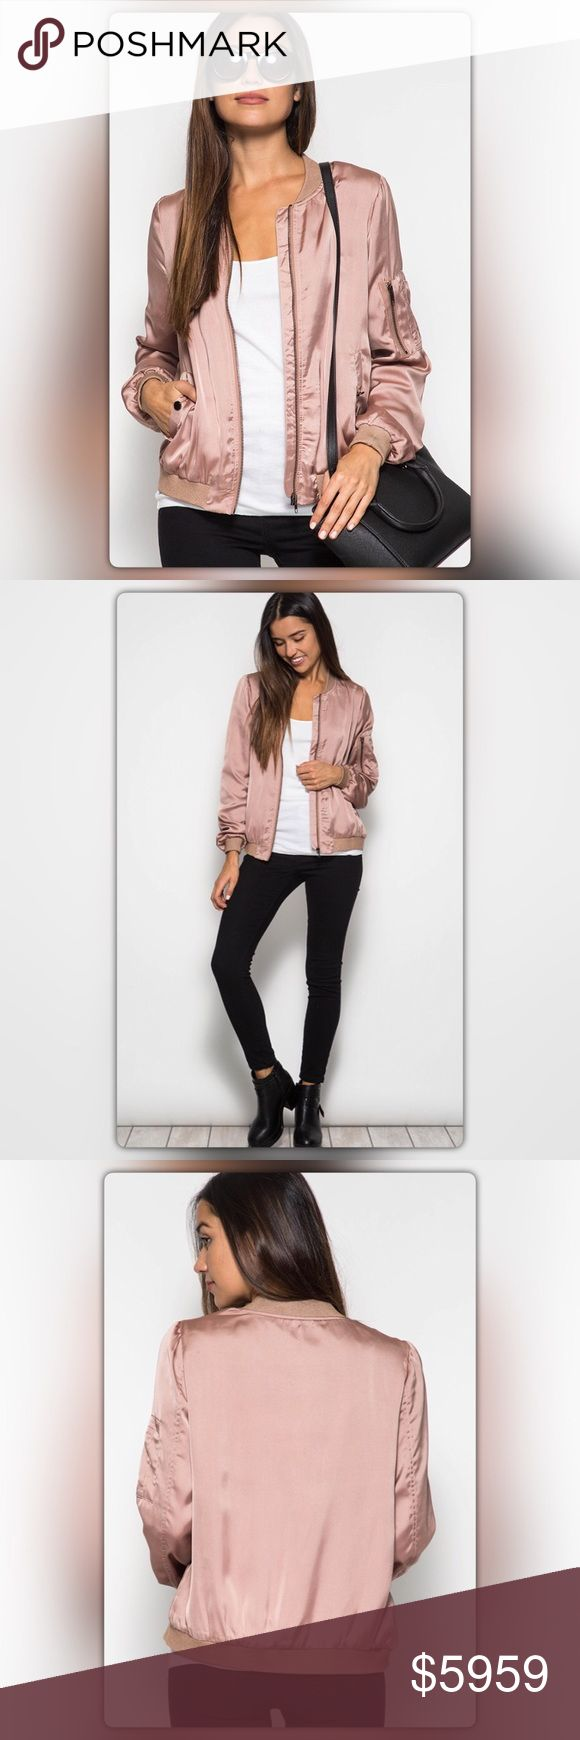 Dusty Rose Satin Bomber Jacket Ships 11/9. Get the look of the season! Bomber jackets are back. Put a girly twist on this classic look with a sweet, but sassy, dusty rose color. The jacket has side pockets and a zipper detail on the sleeves. NEW Boutique Jackets & Coats